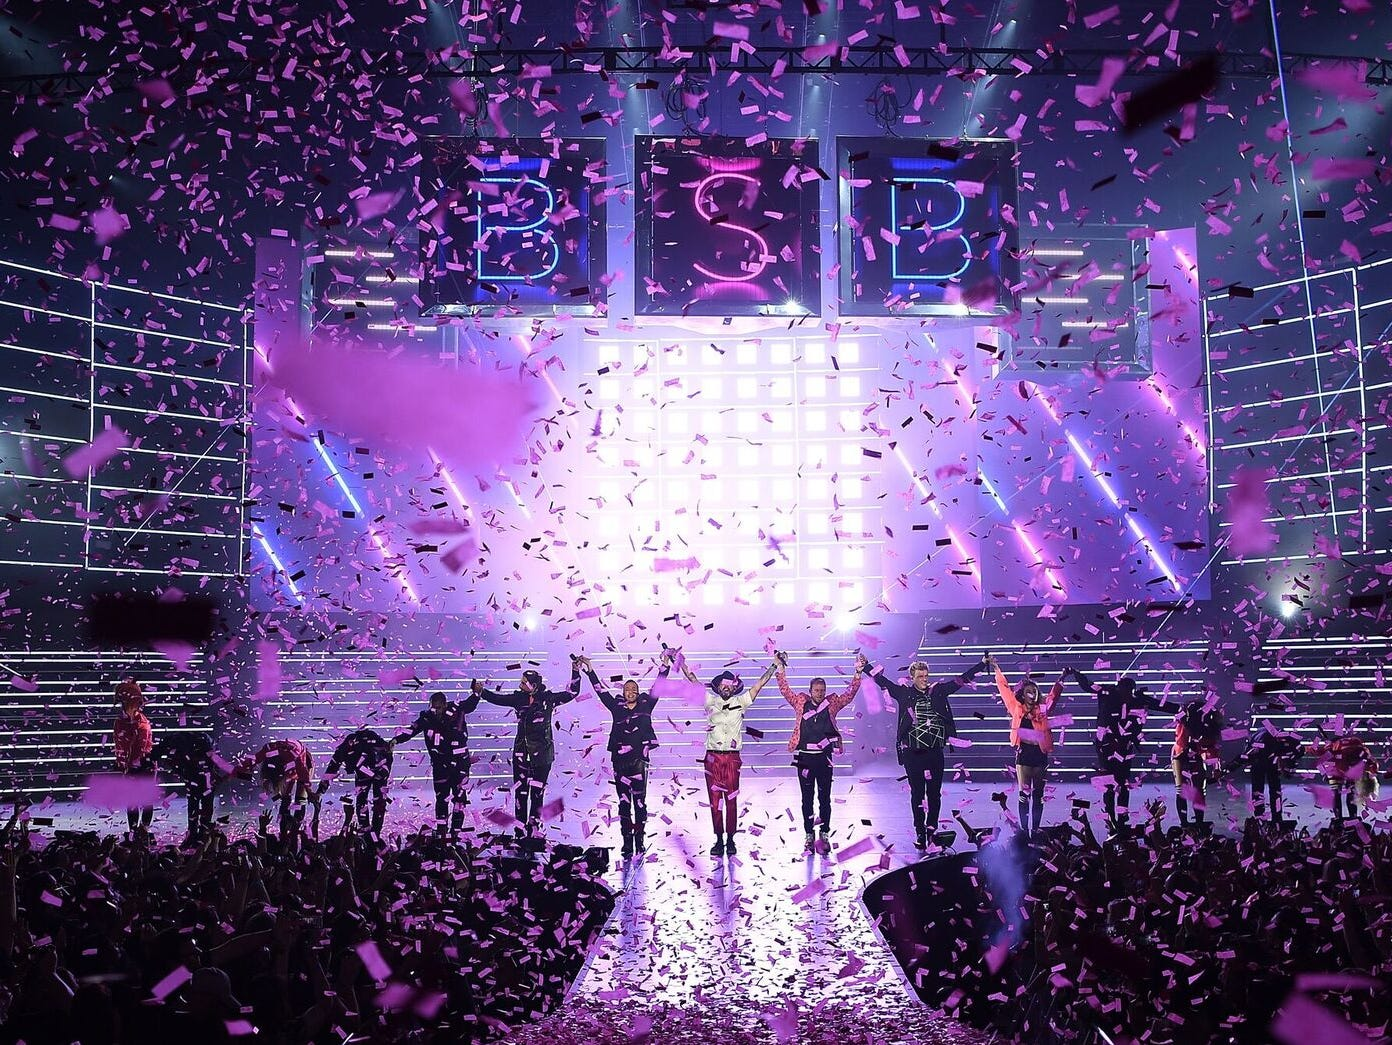 The Backstreet Boys, a 90s boy band,  began a Las Vegas residency at Planet Hollywood Resort & Casino in 2017. The shows continues in 2019, with final performances beginning Feb. 6.